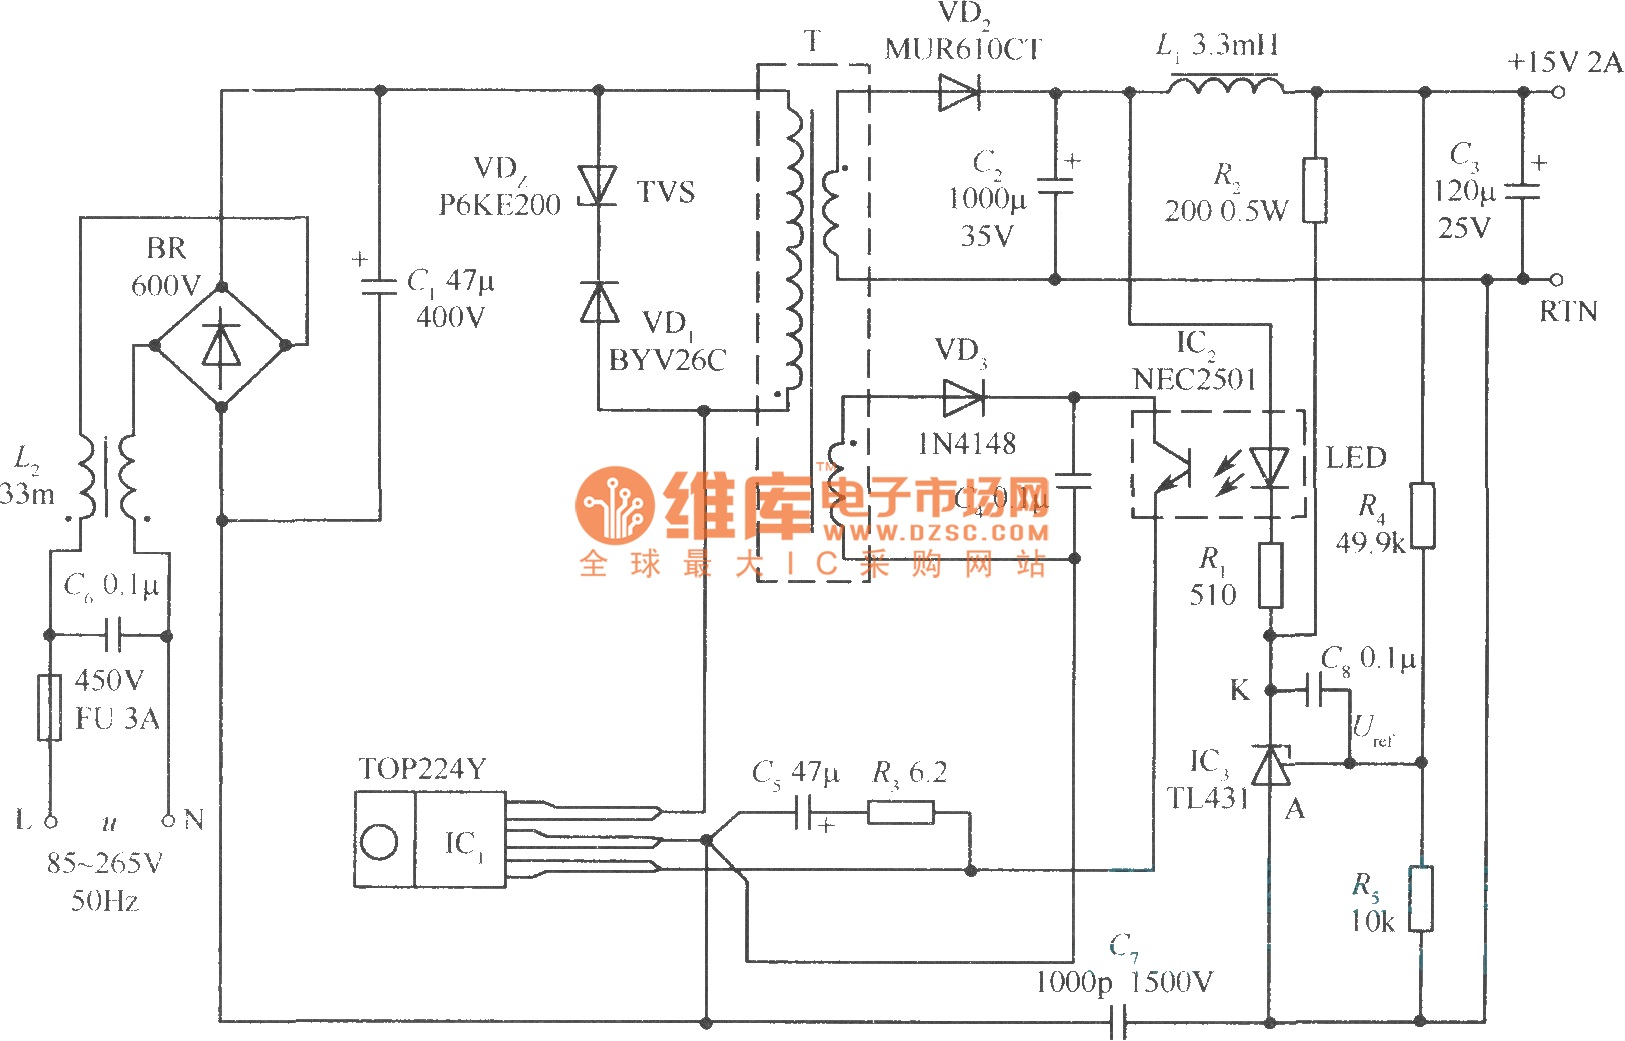 30W micro switch regulated power supply composed of TOP224Y - schematic